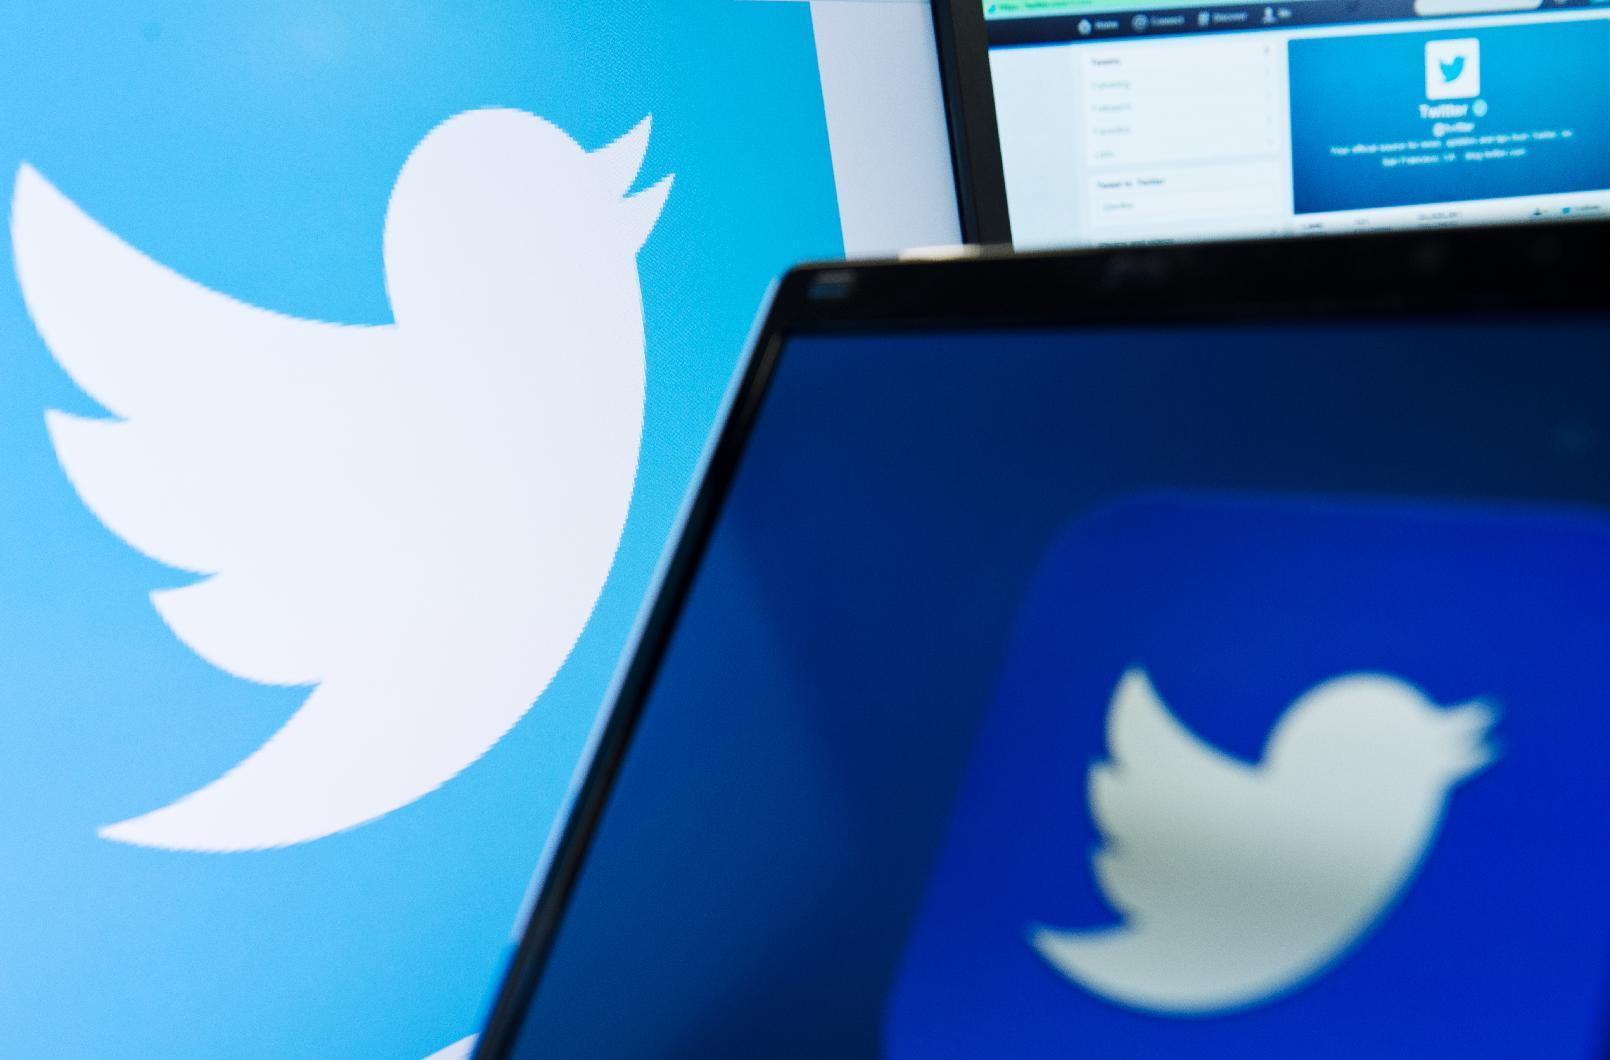 Twitter tests filter to bury unwanted DMs even further